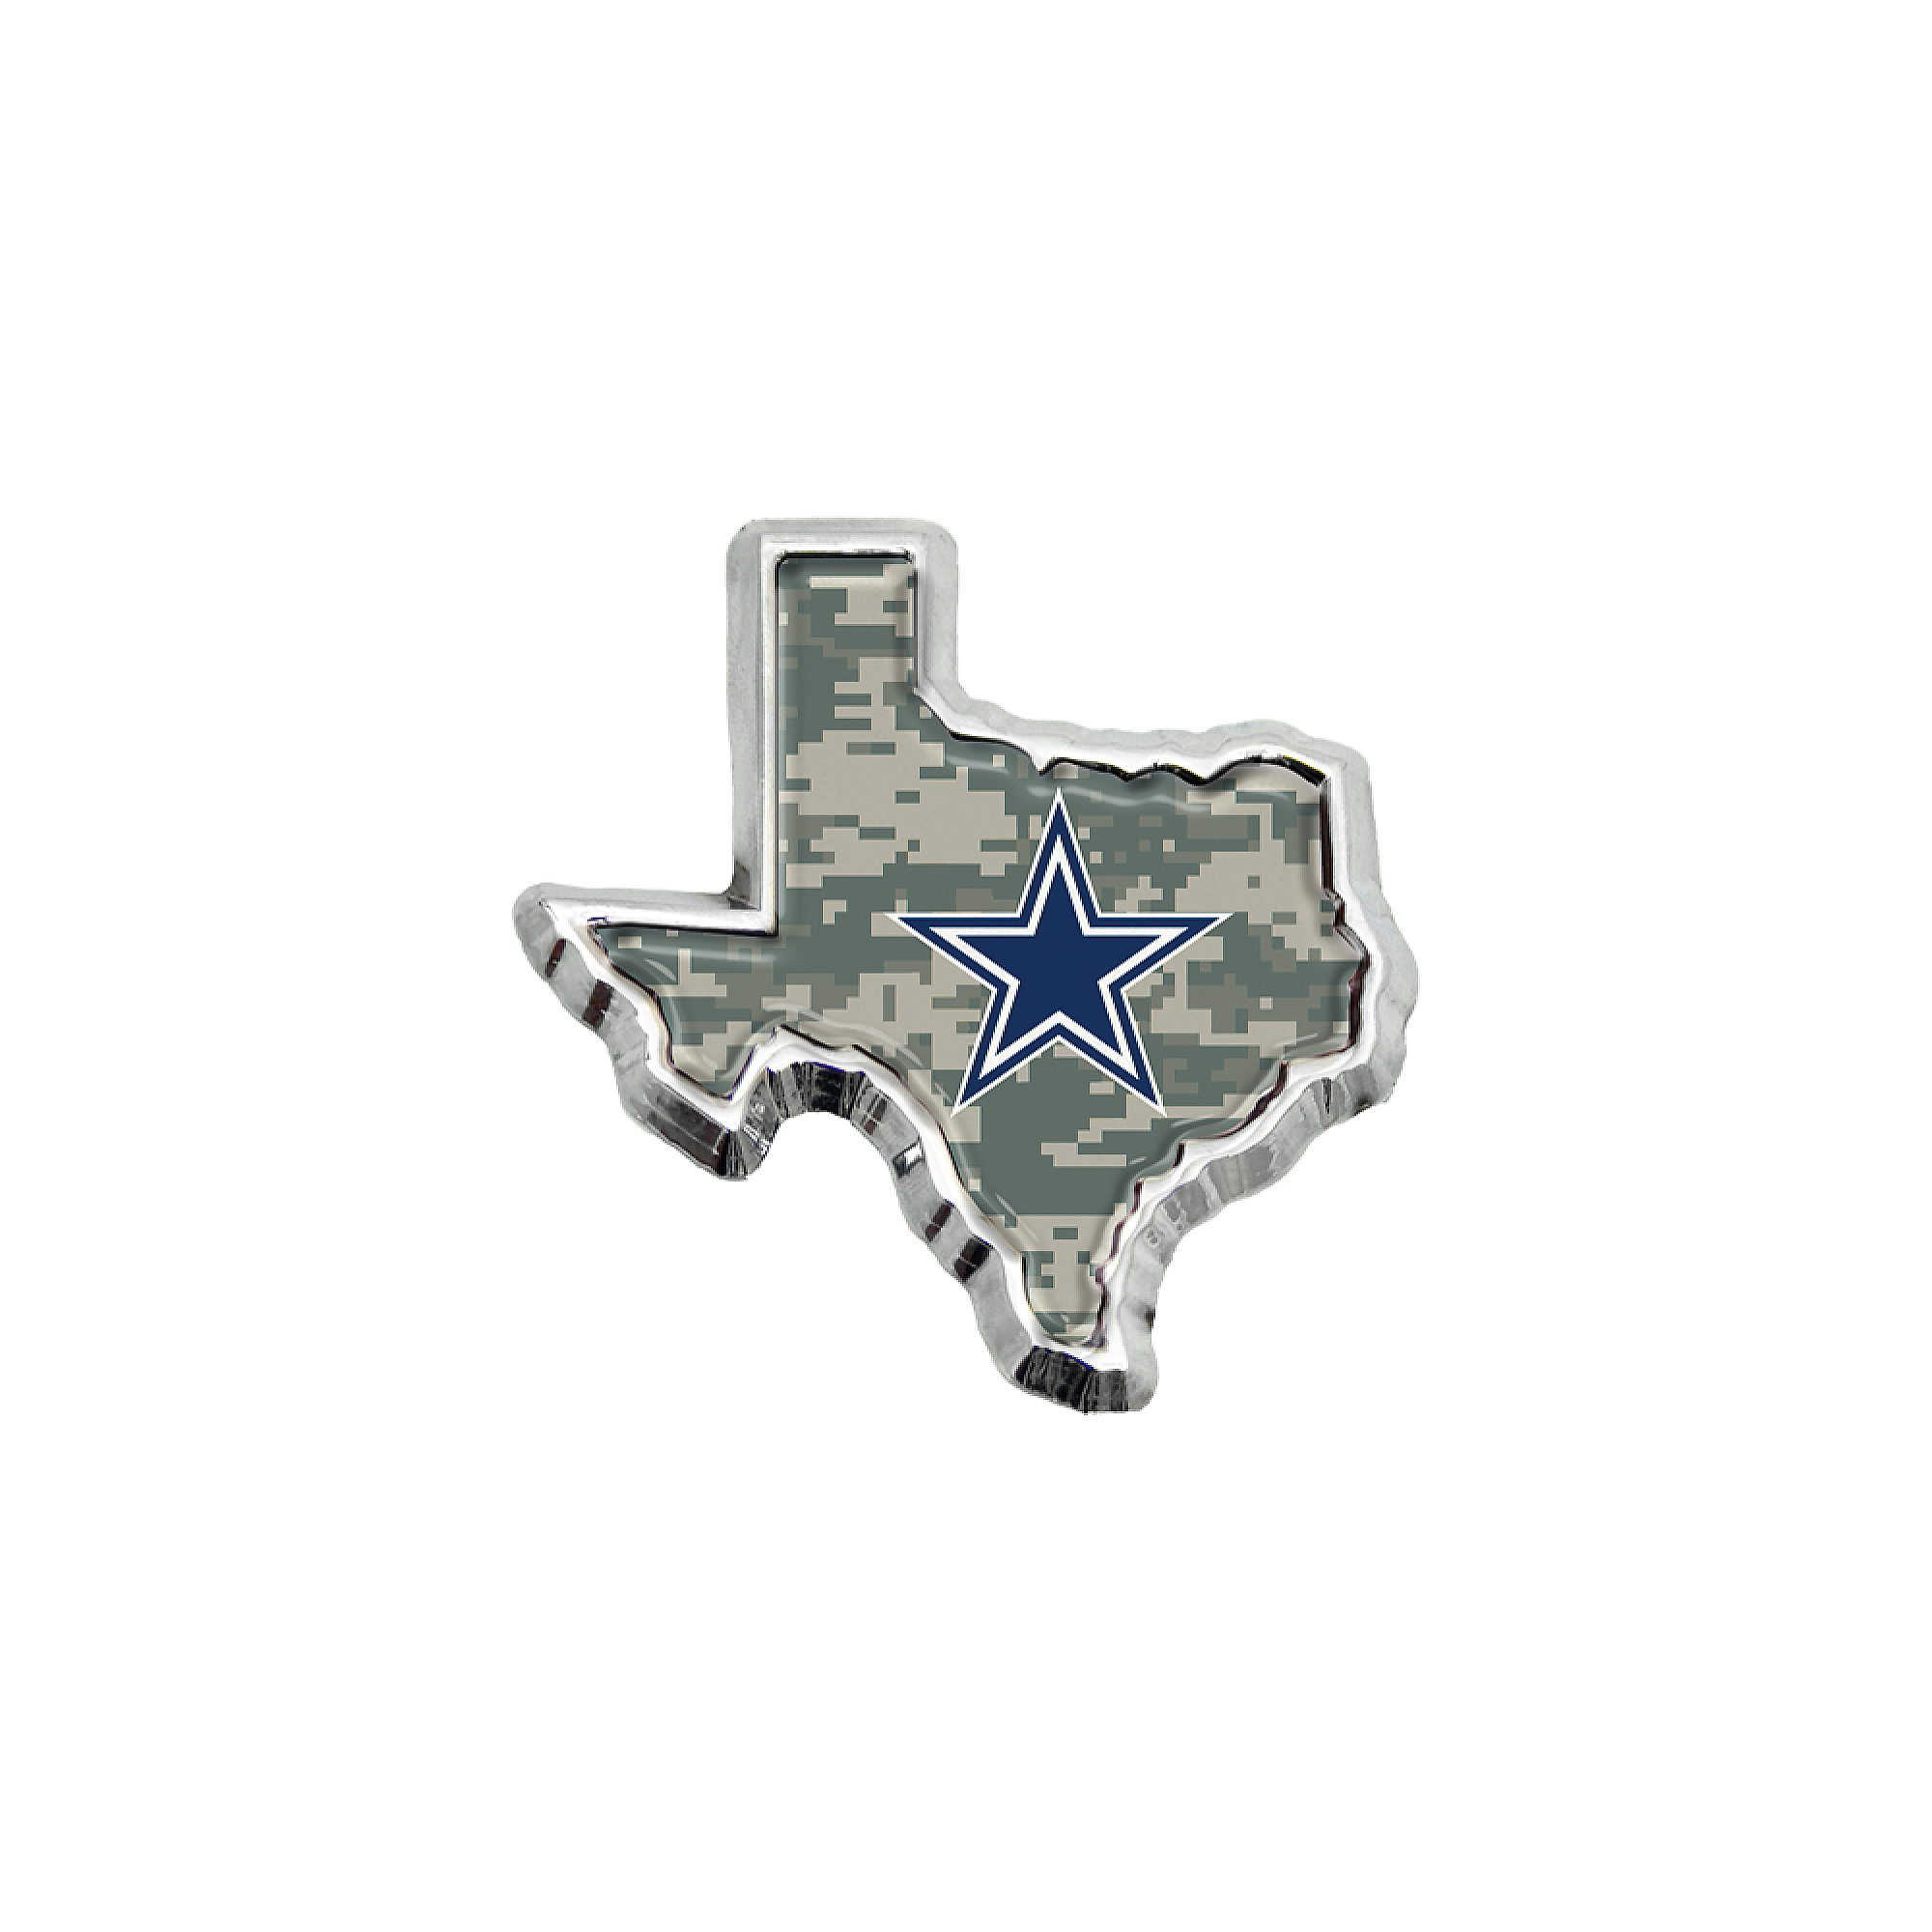 Dallas Cowboys Digital Camo State of Texas Emblem